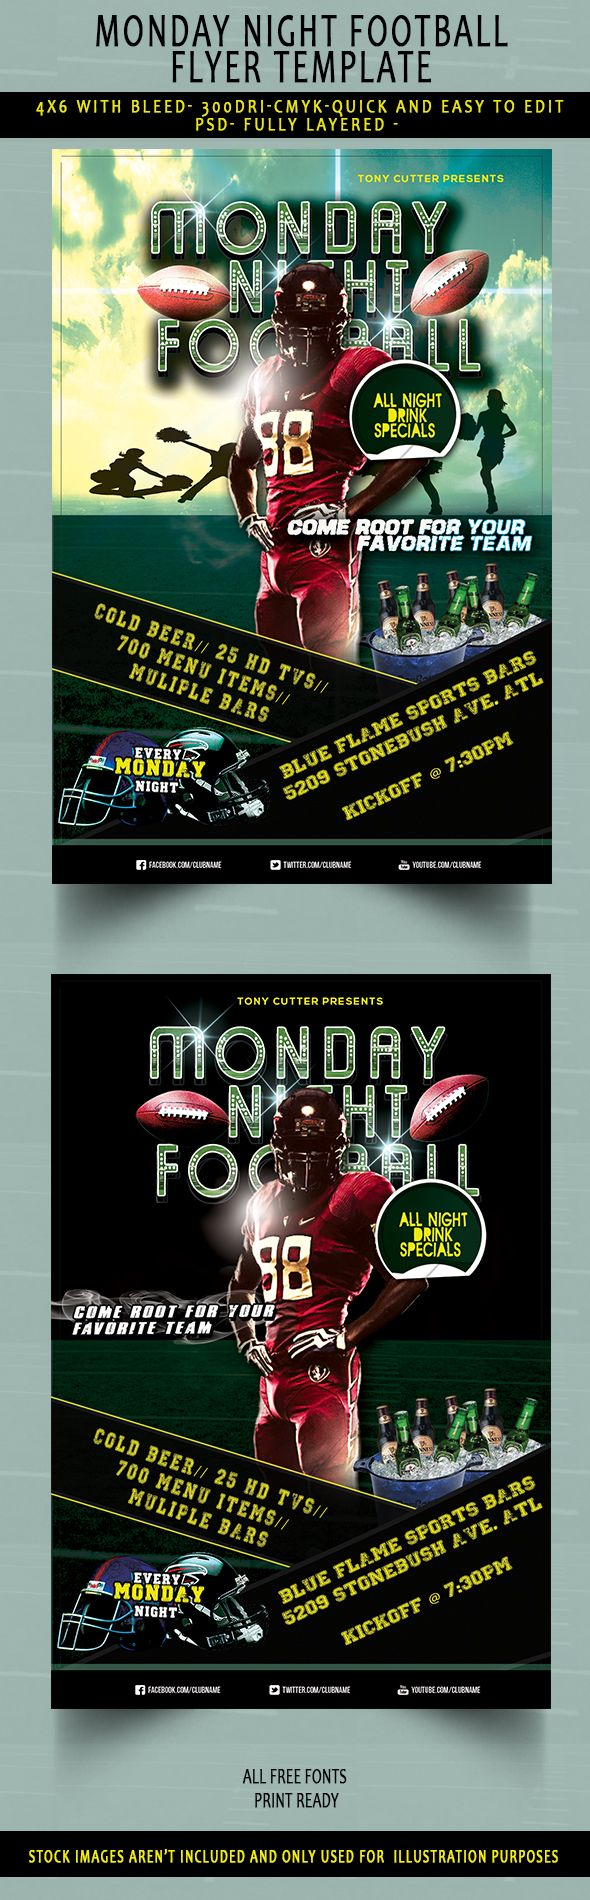 17 best ideas about flyer wright flyer men s monday night football flyer psd by tony cutter via behance